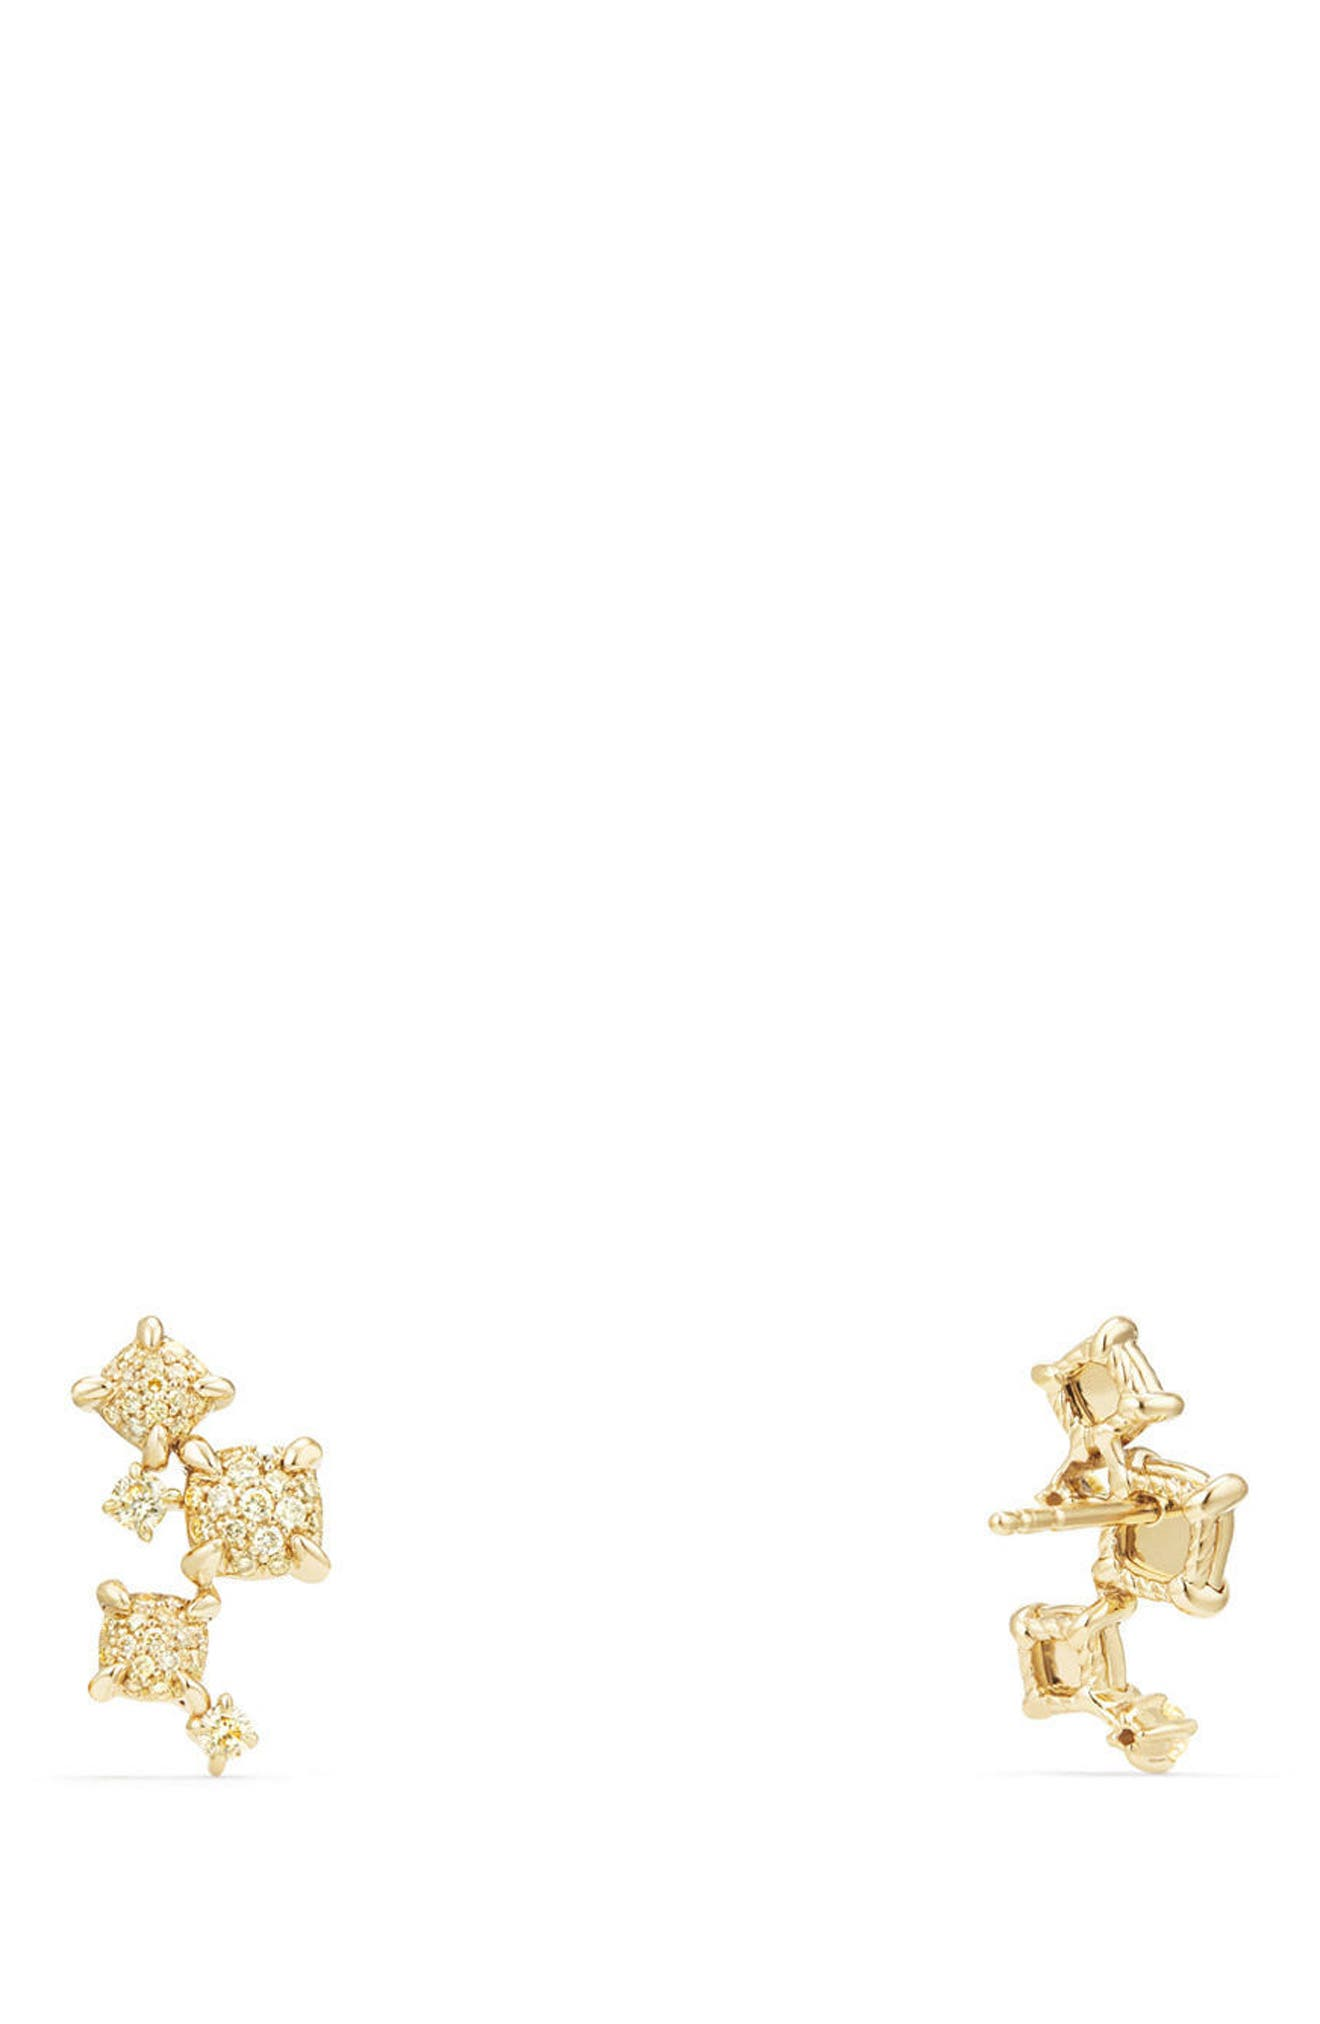 Petite Châtelaine Climber Earrings in 18K Gold with Diamonds,                             Alternate thumbnail 2, color,                             Yellow Diamond